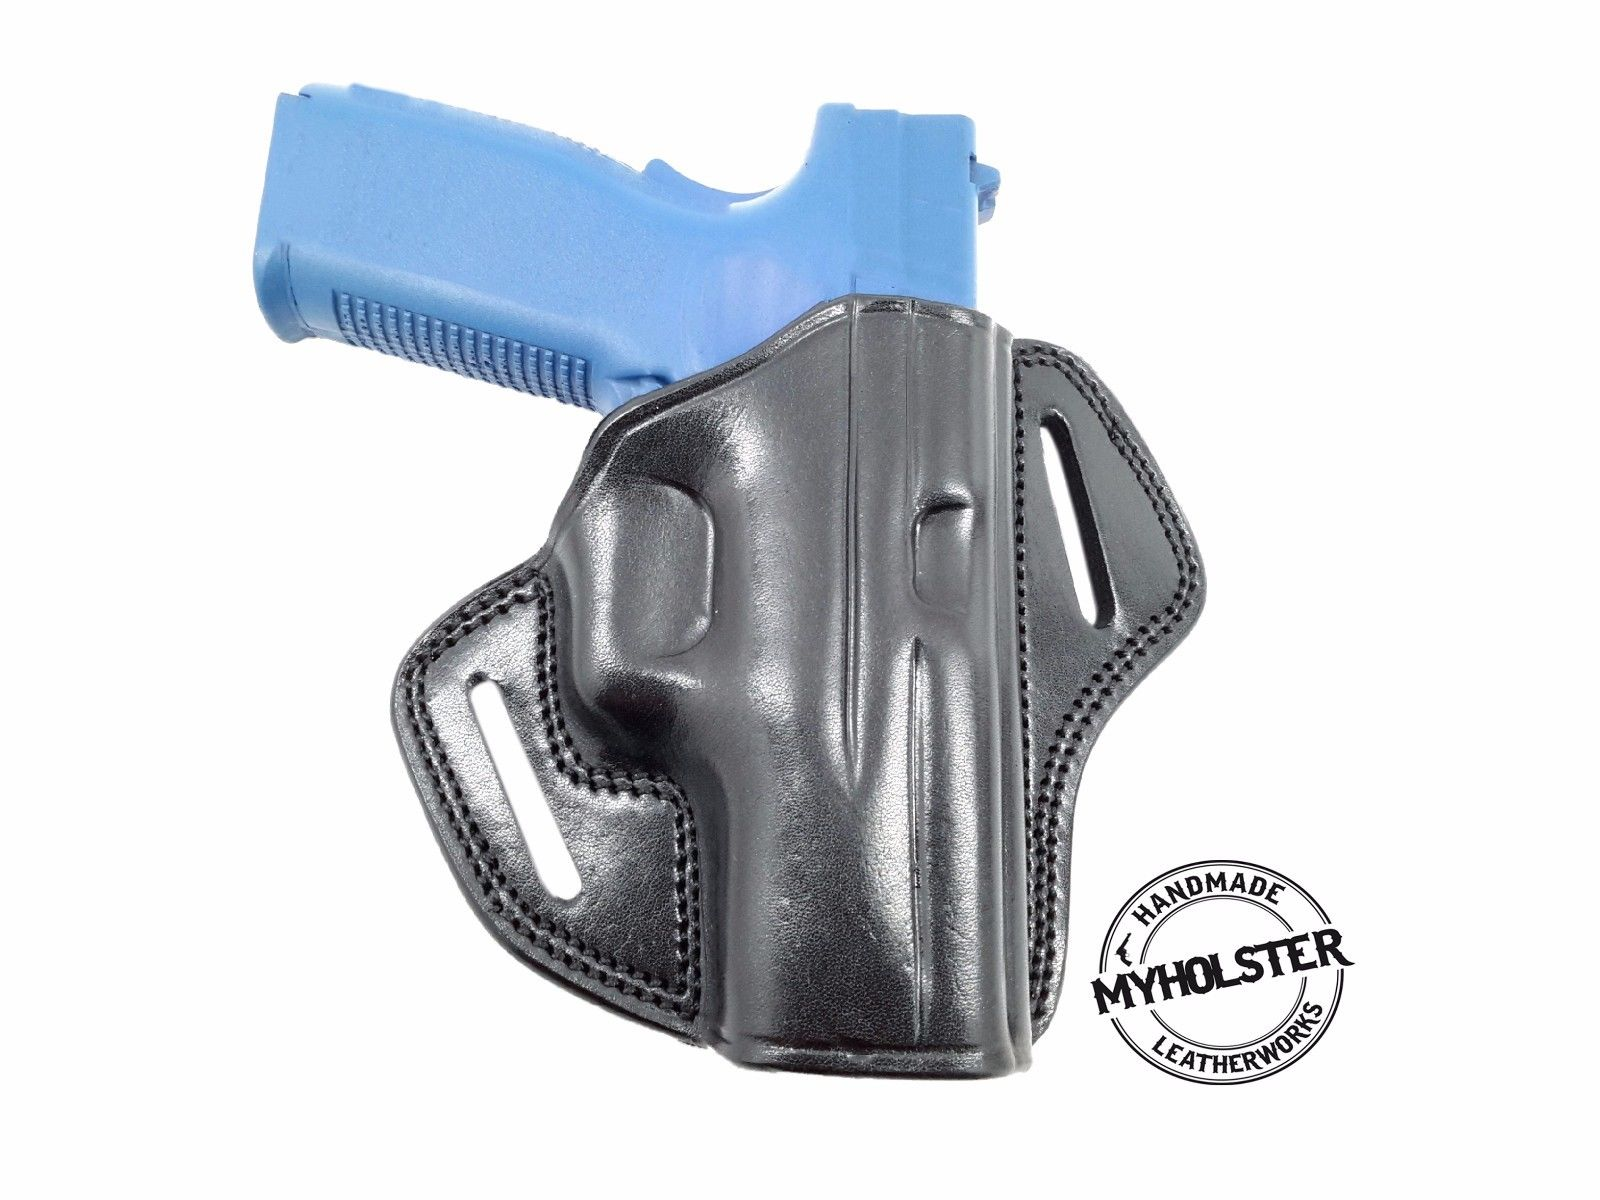 Details about  /HD Concealed RH LH OWB IWB Leather Gun Holster For Canik 55